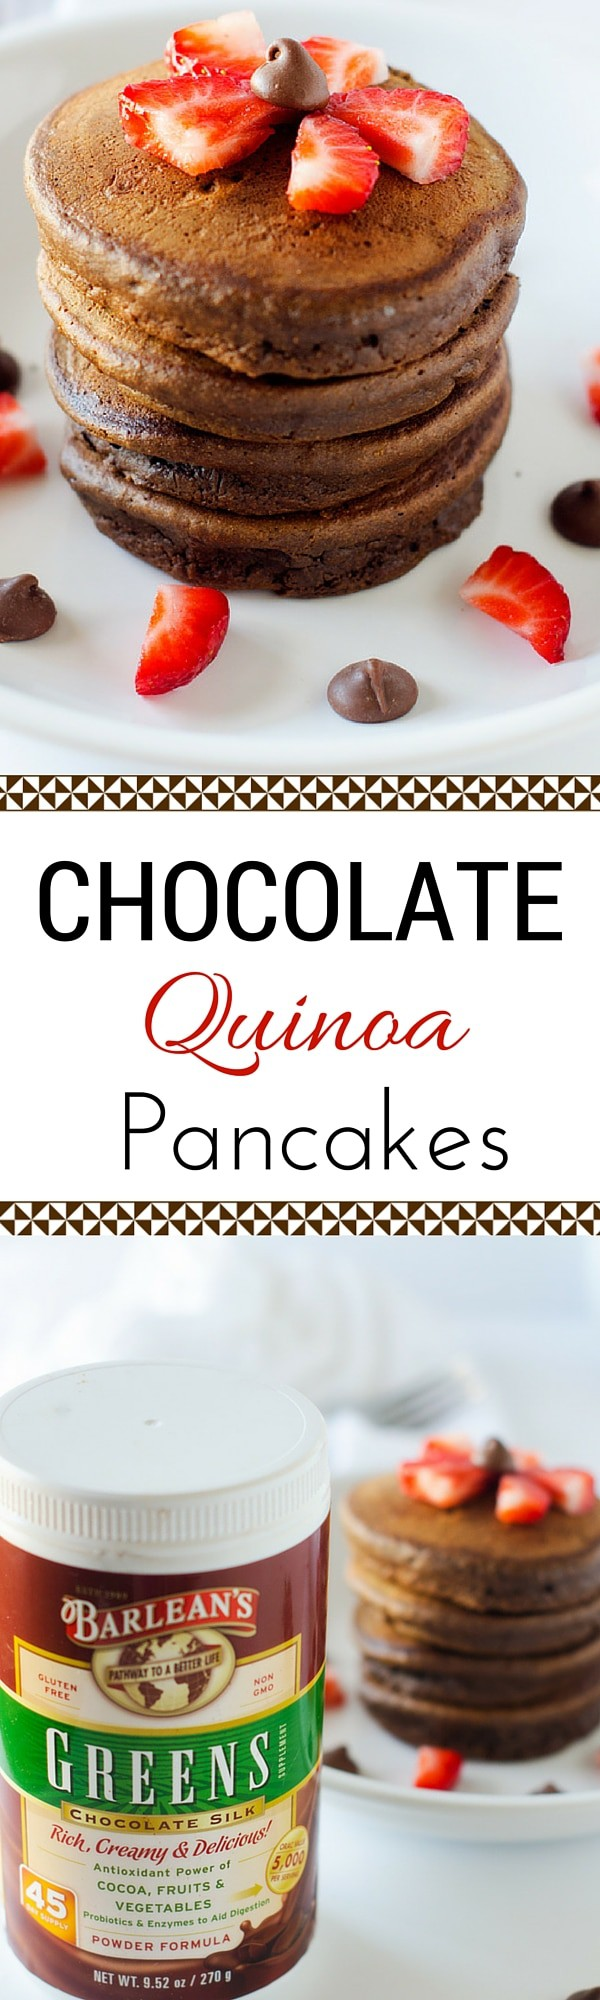 Chocolate Quinoa Pancakes - My Secret Weapon for Getting Quinoa and Greens in My Kids! You won't believe how fluffy and delicious these pancakes are or that they are packed with greens.